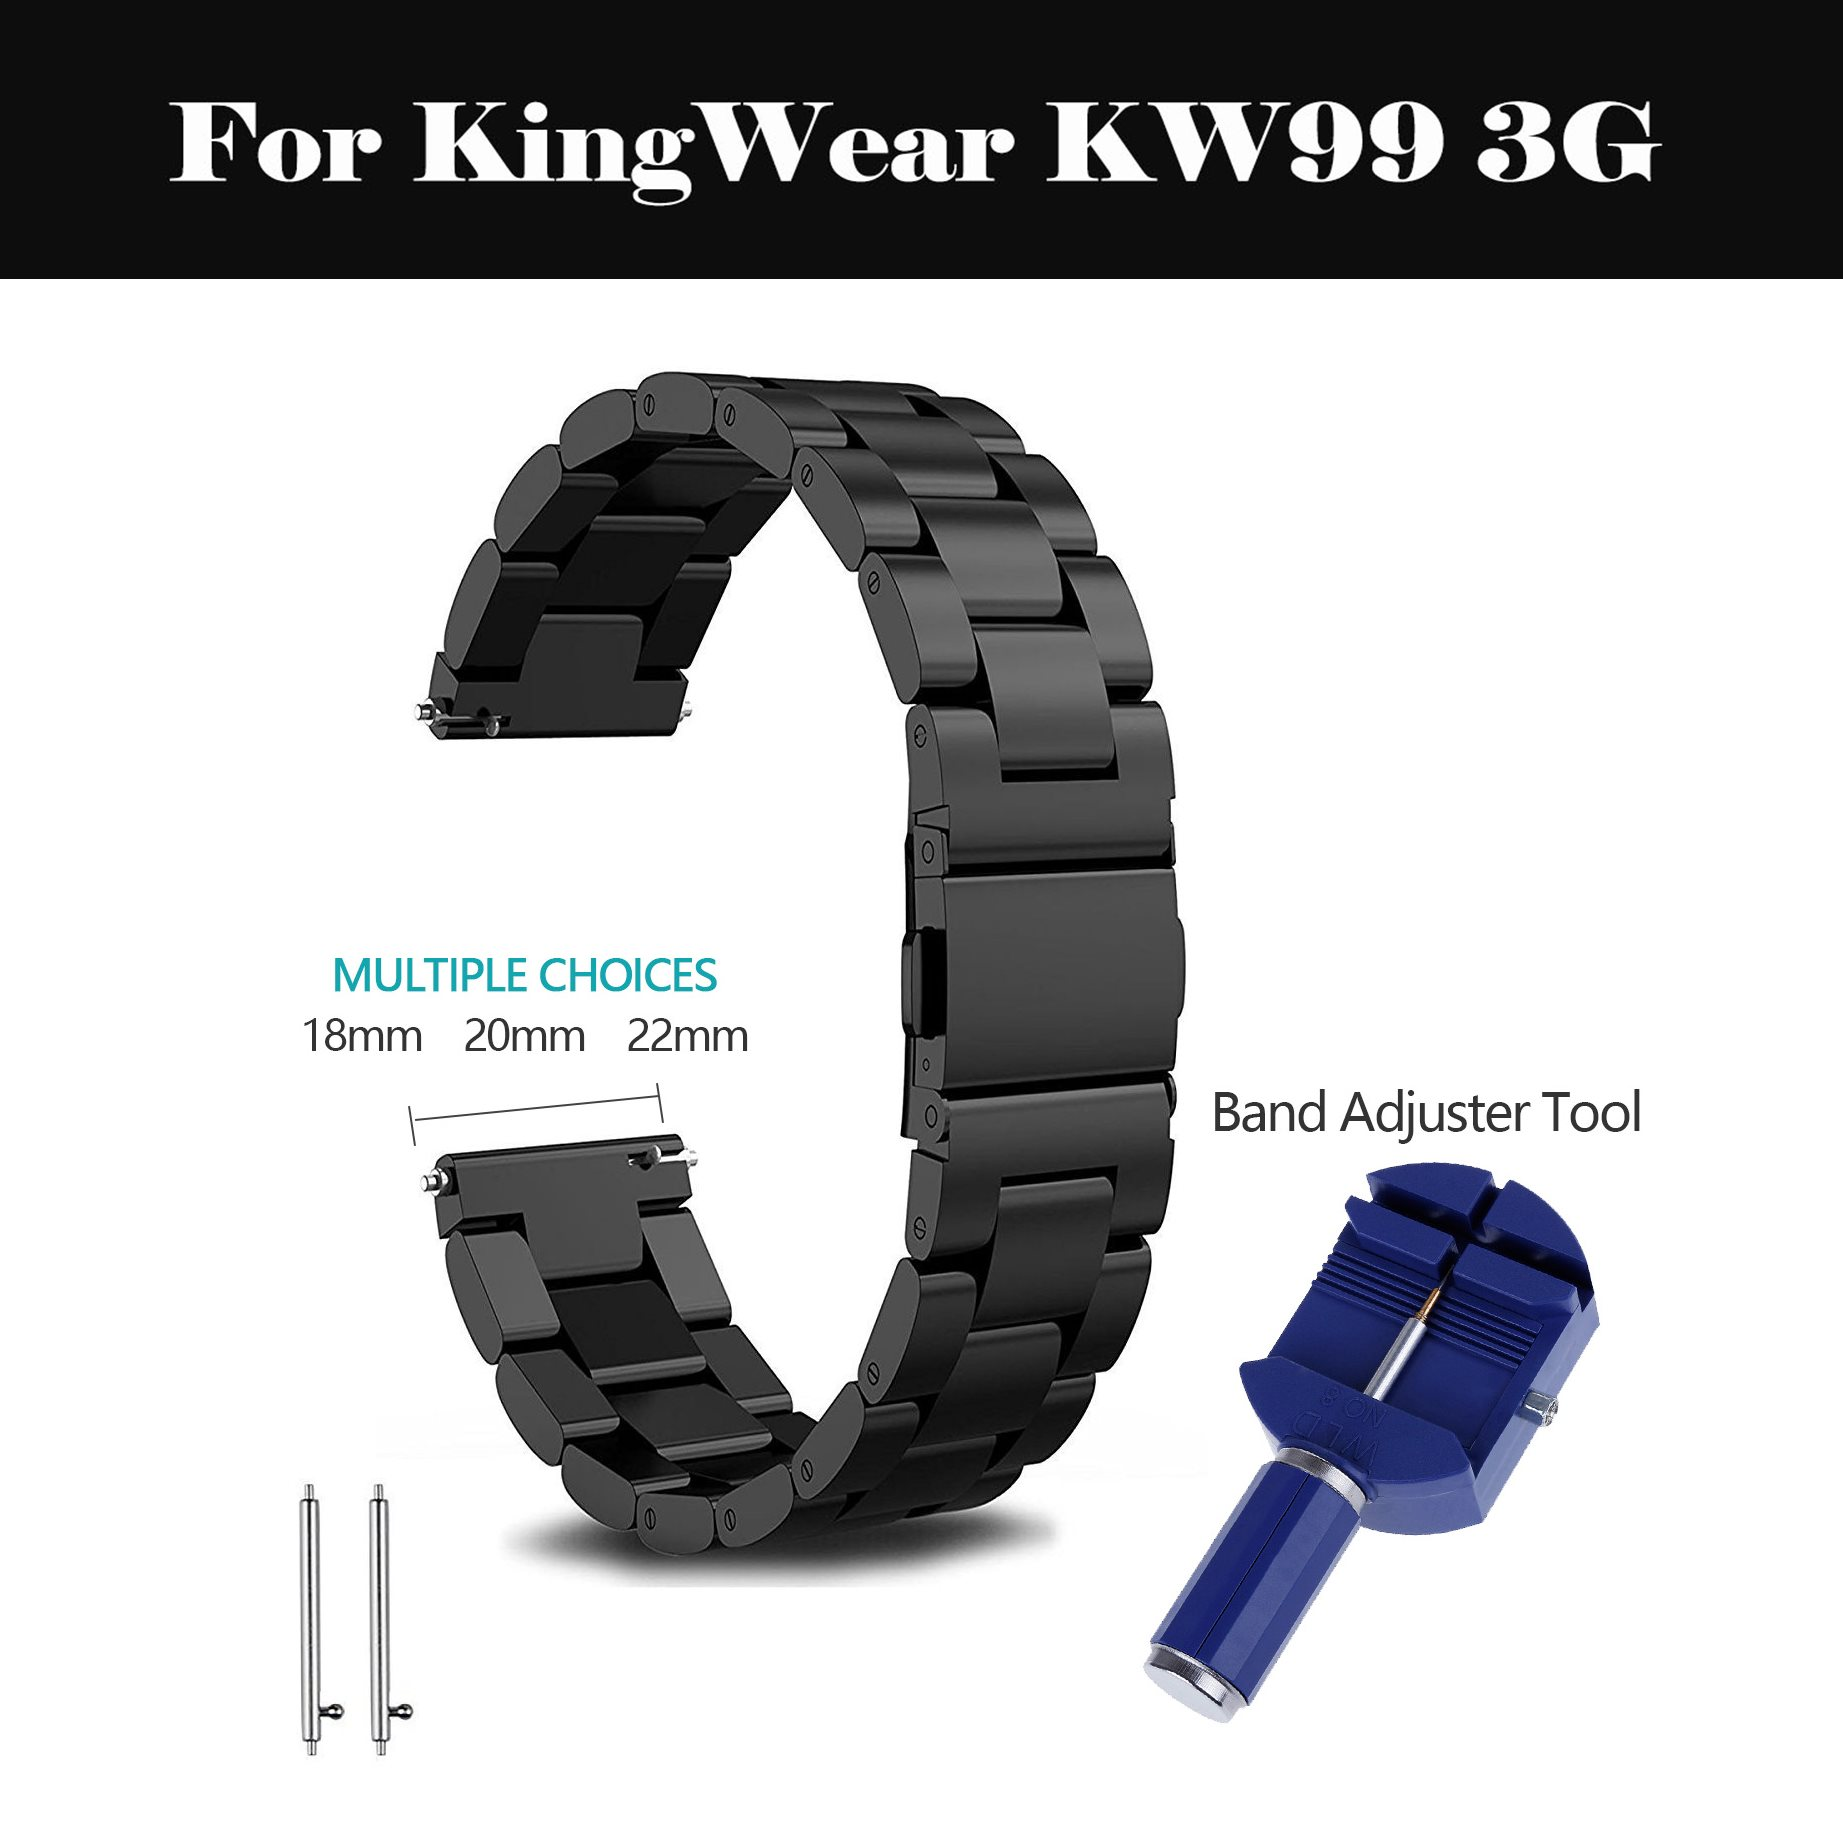 18mm 20mm 22mm Stainless Steel Watch Band <font><b>Strap</b></font> smart watch Link bracelet black For KingWear <font><b>KW99</b></font> 3G image